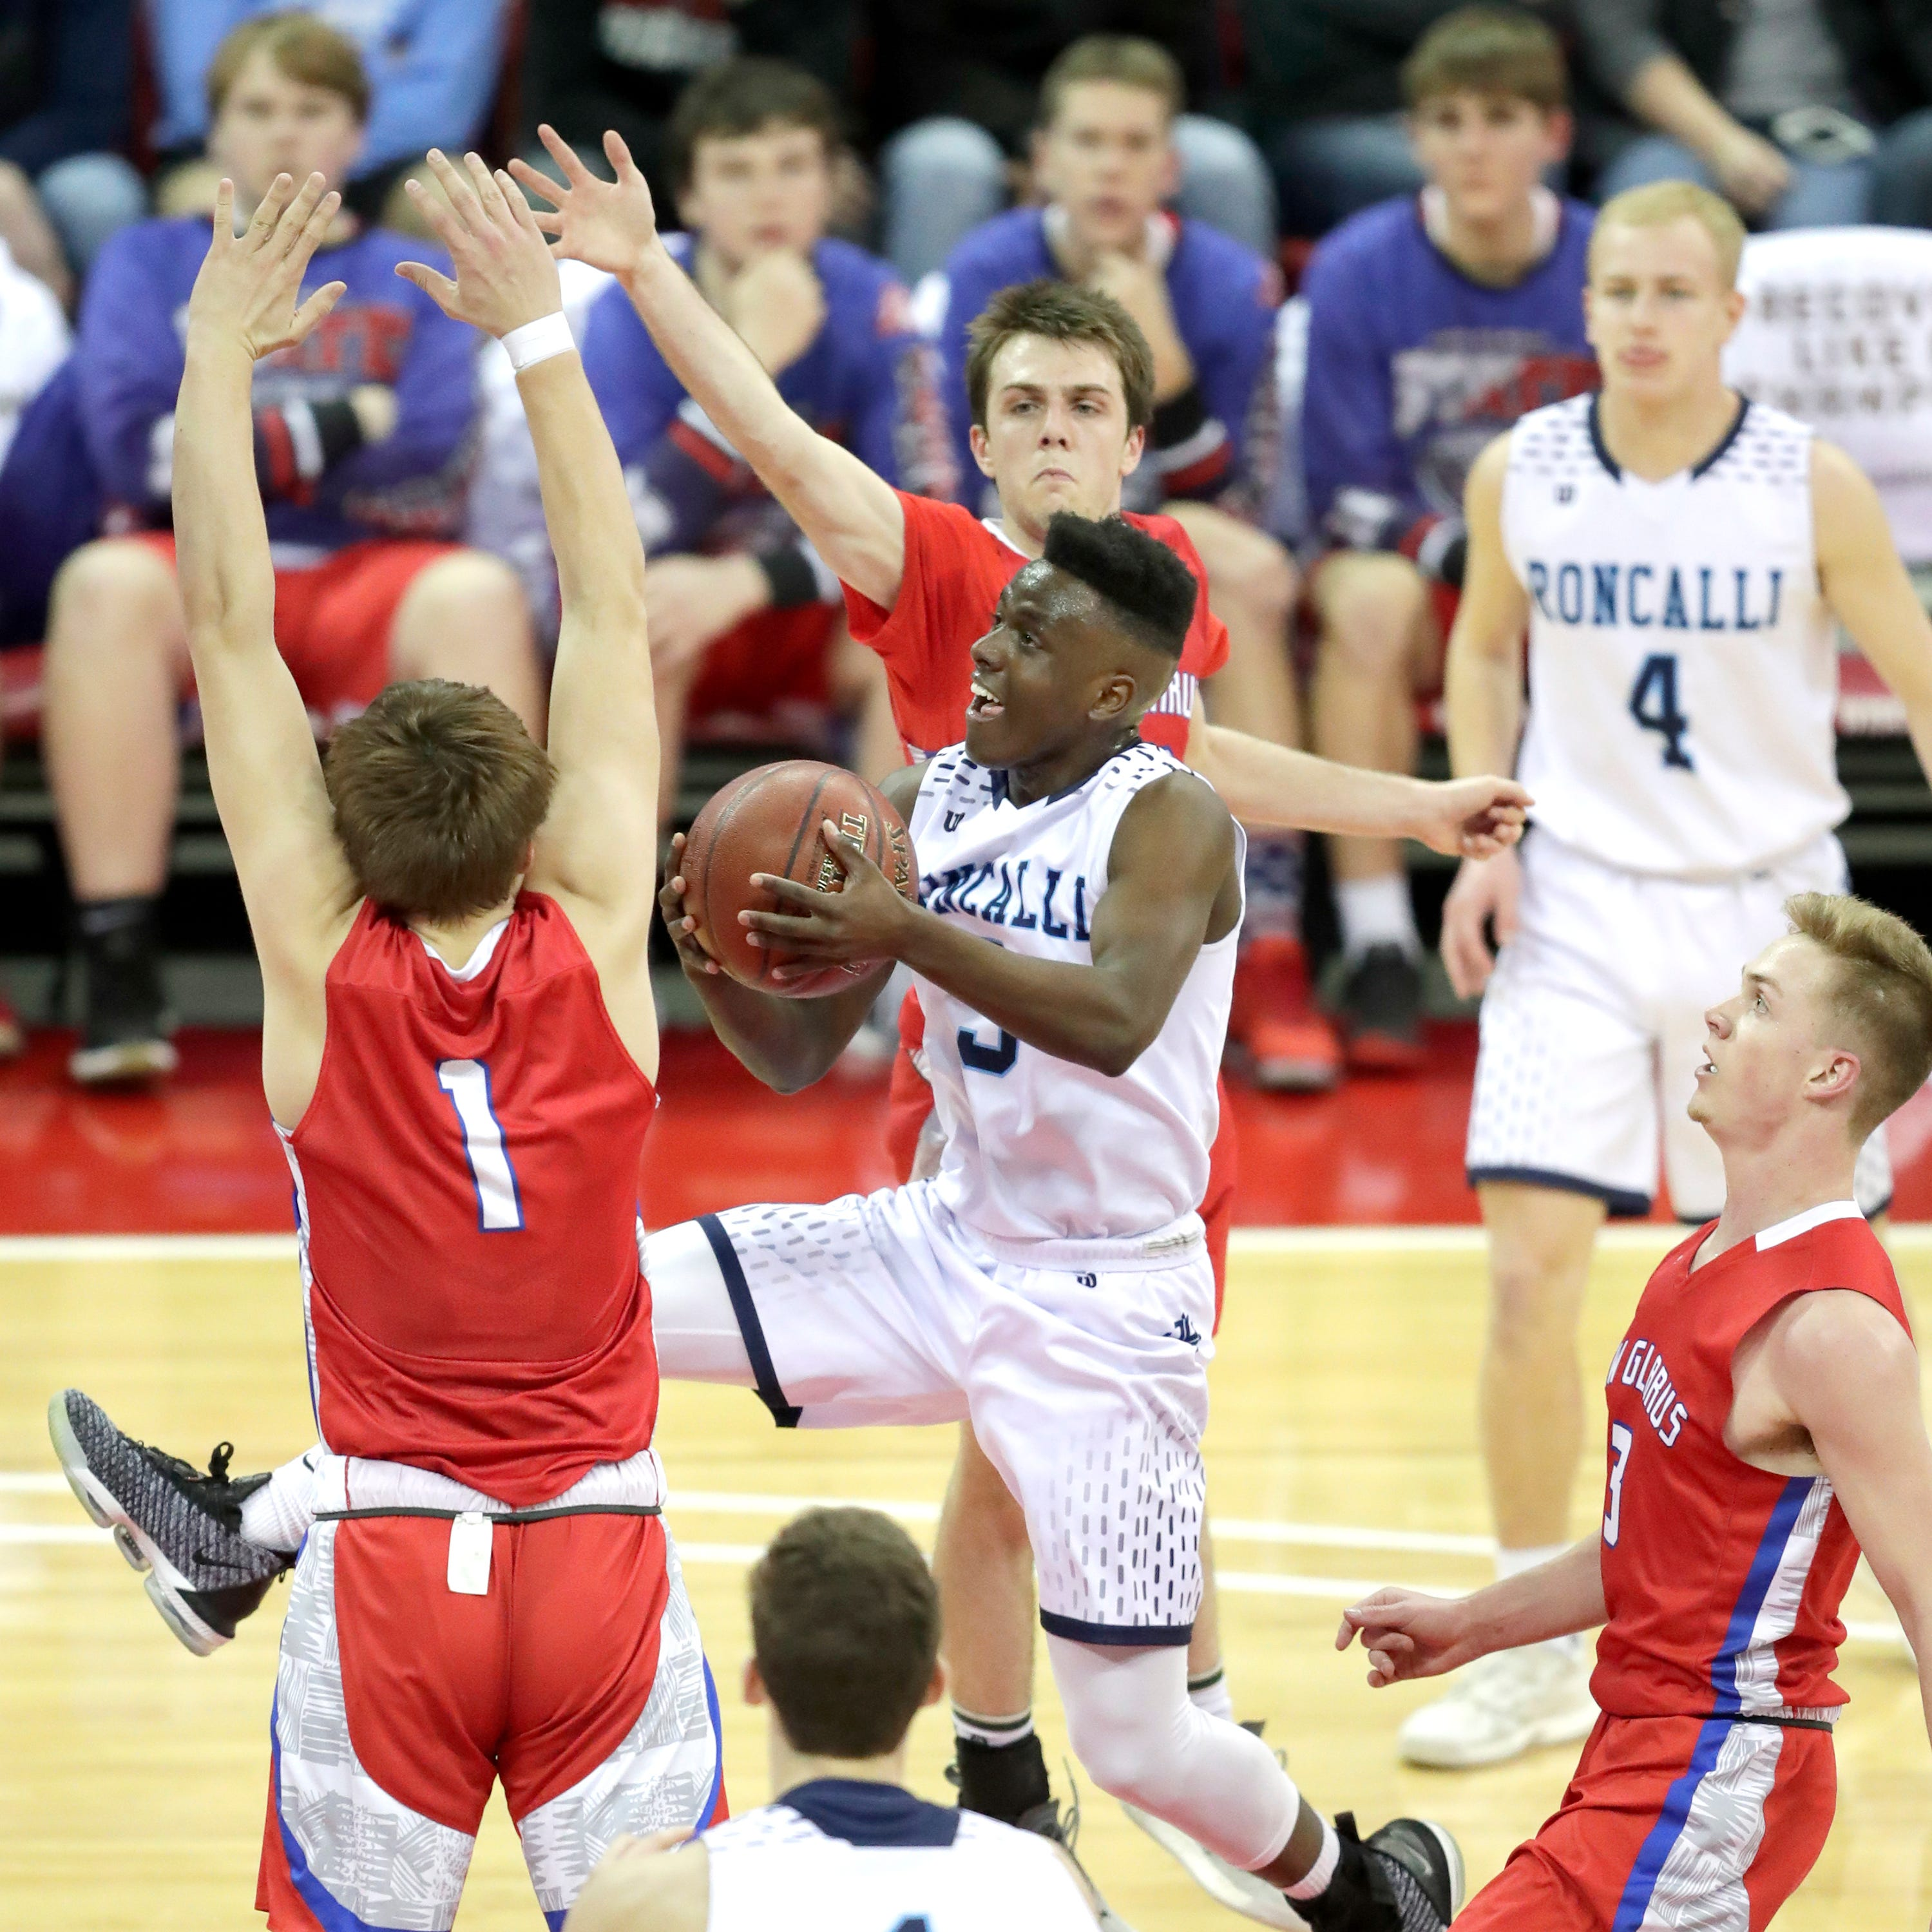 WIAA state basketball: Roncalli falls to New Glarus in Division 4 semifinal